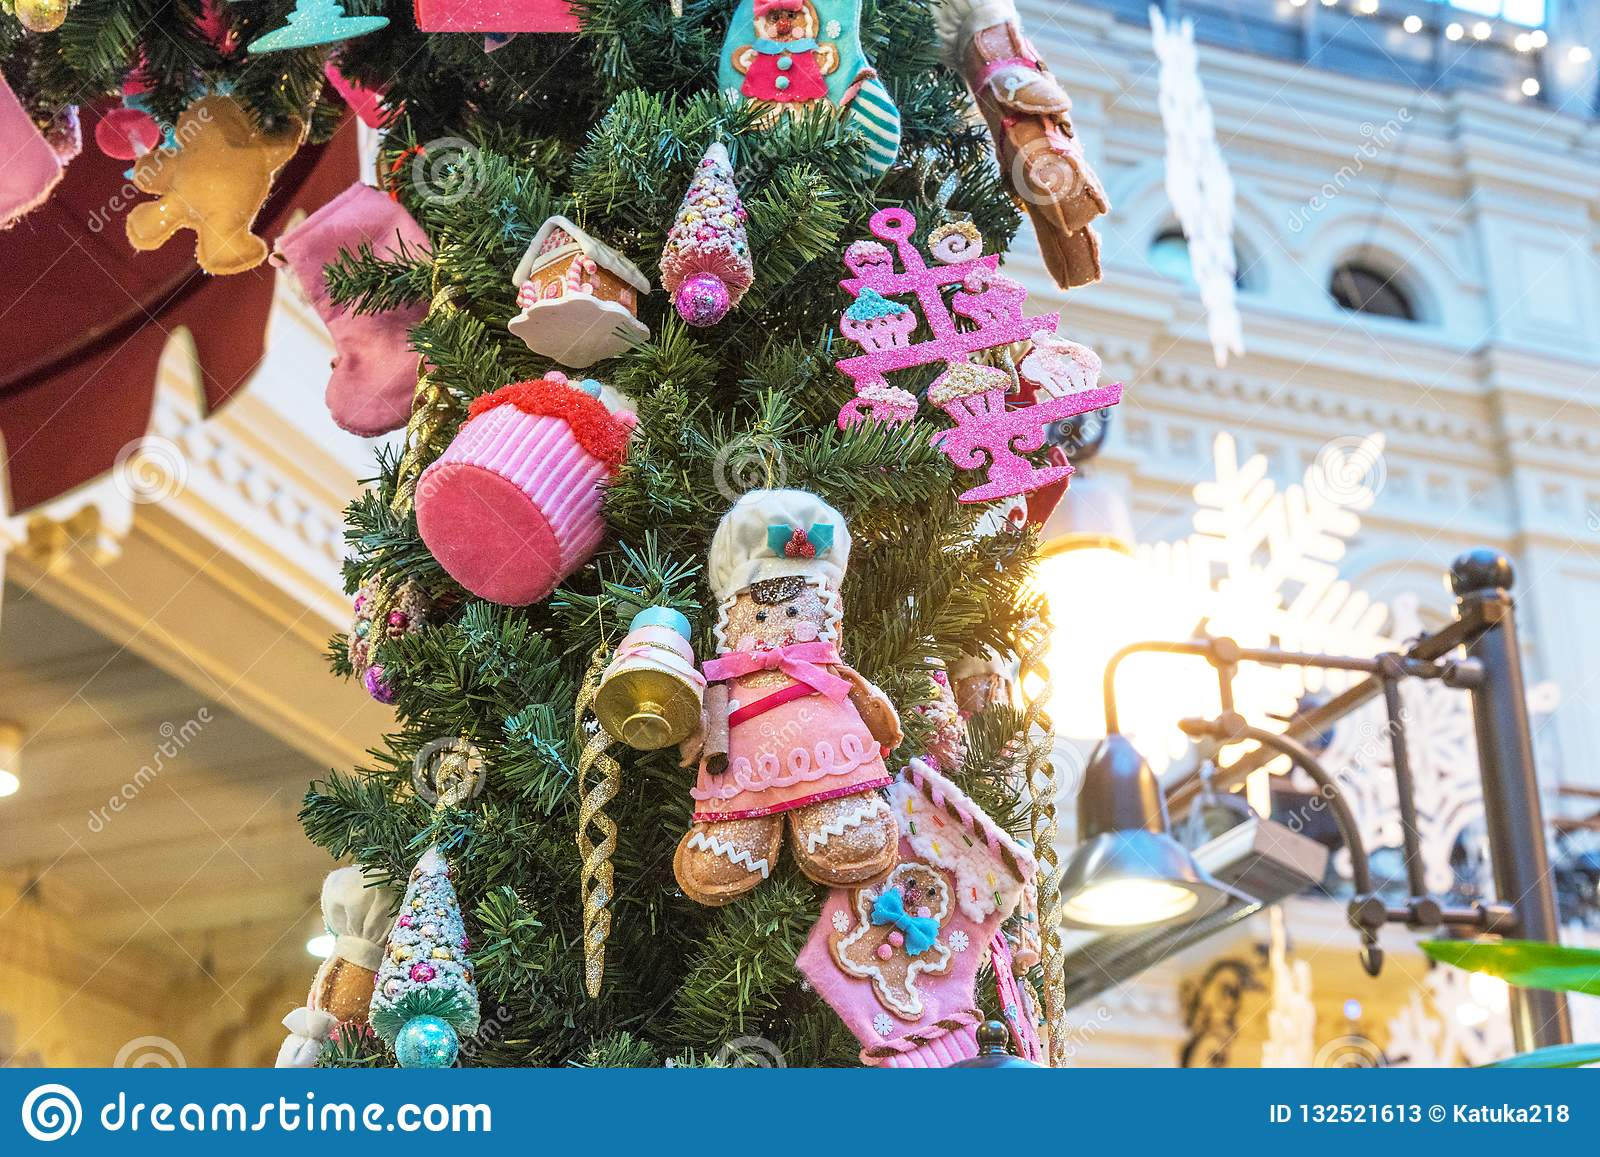 Russia Christmas Ornaments.Moscow Russia November 24 2018 New Year And Christmas